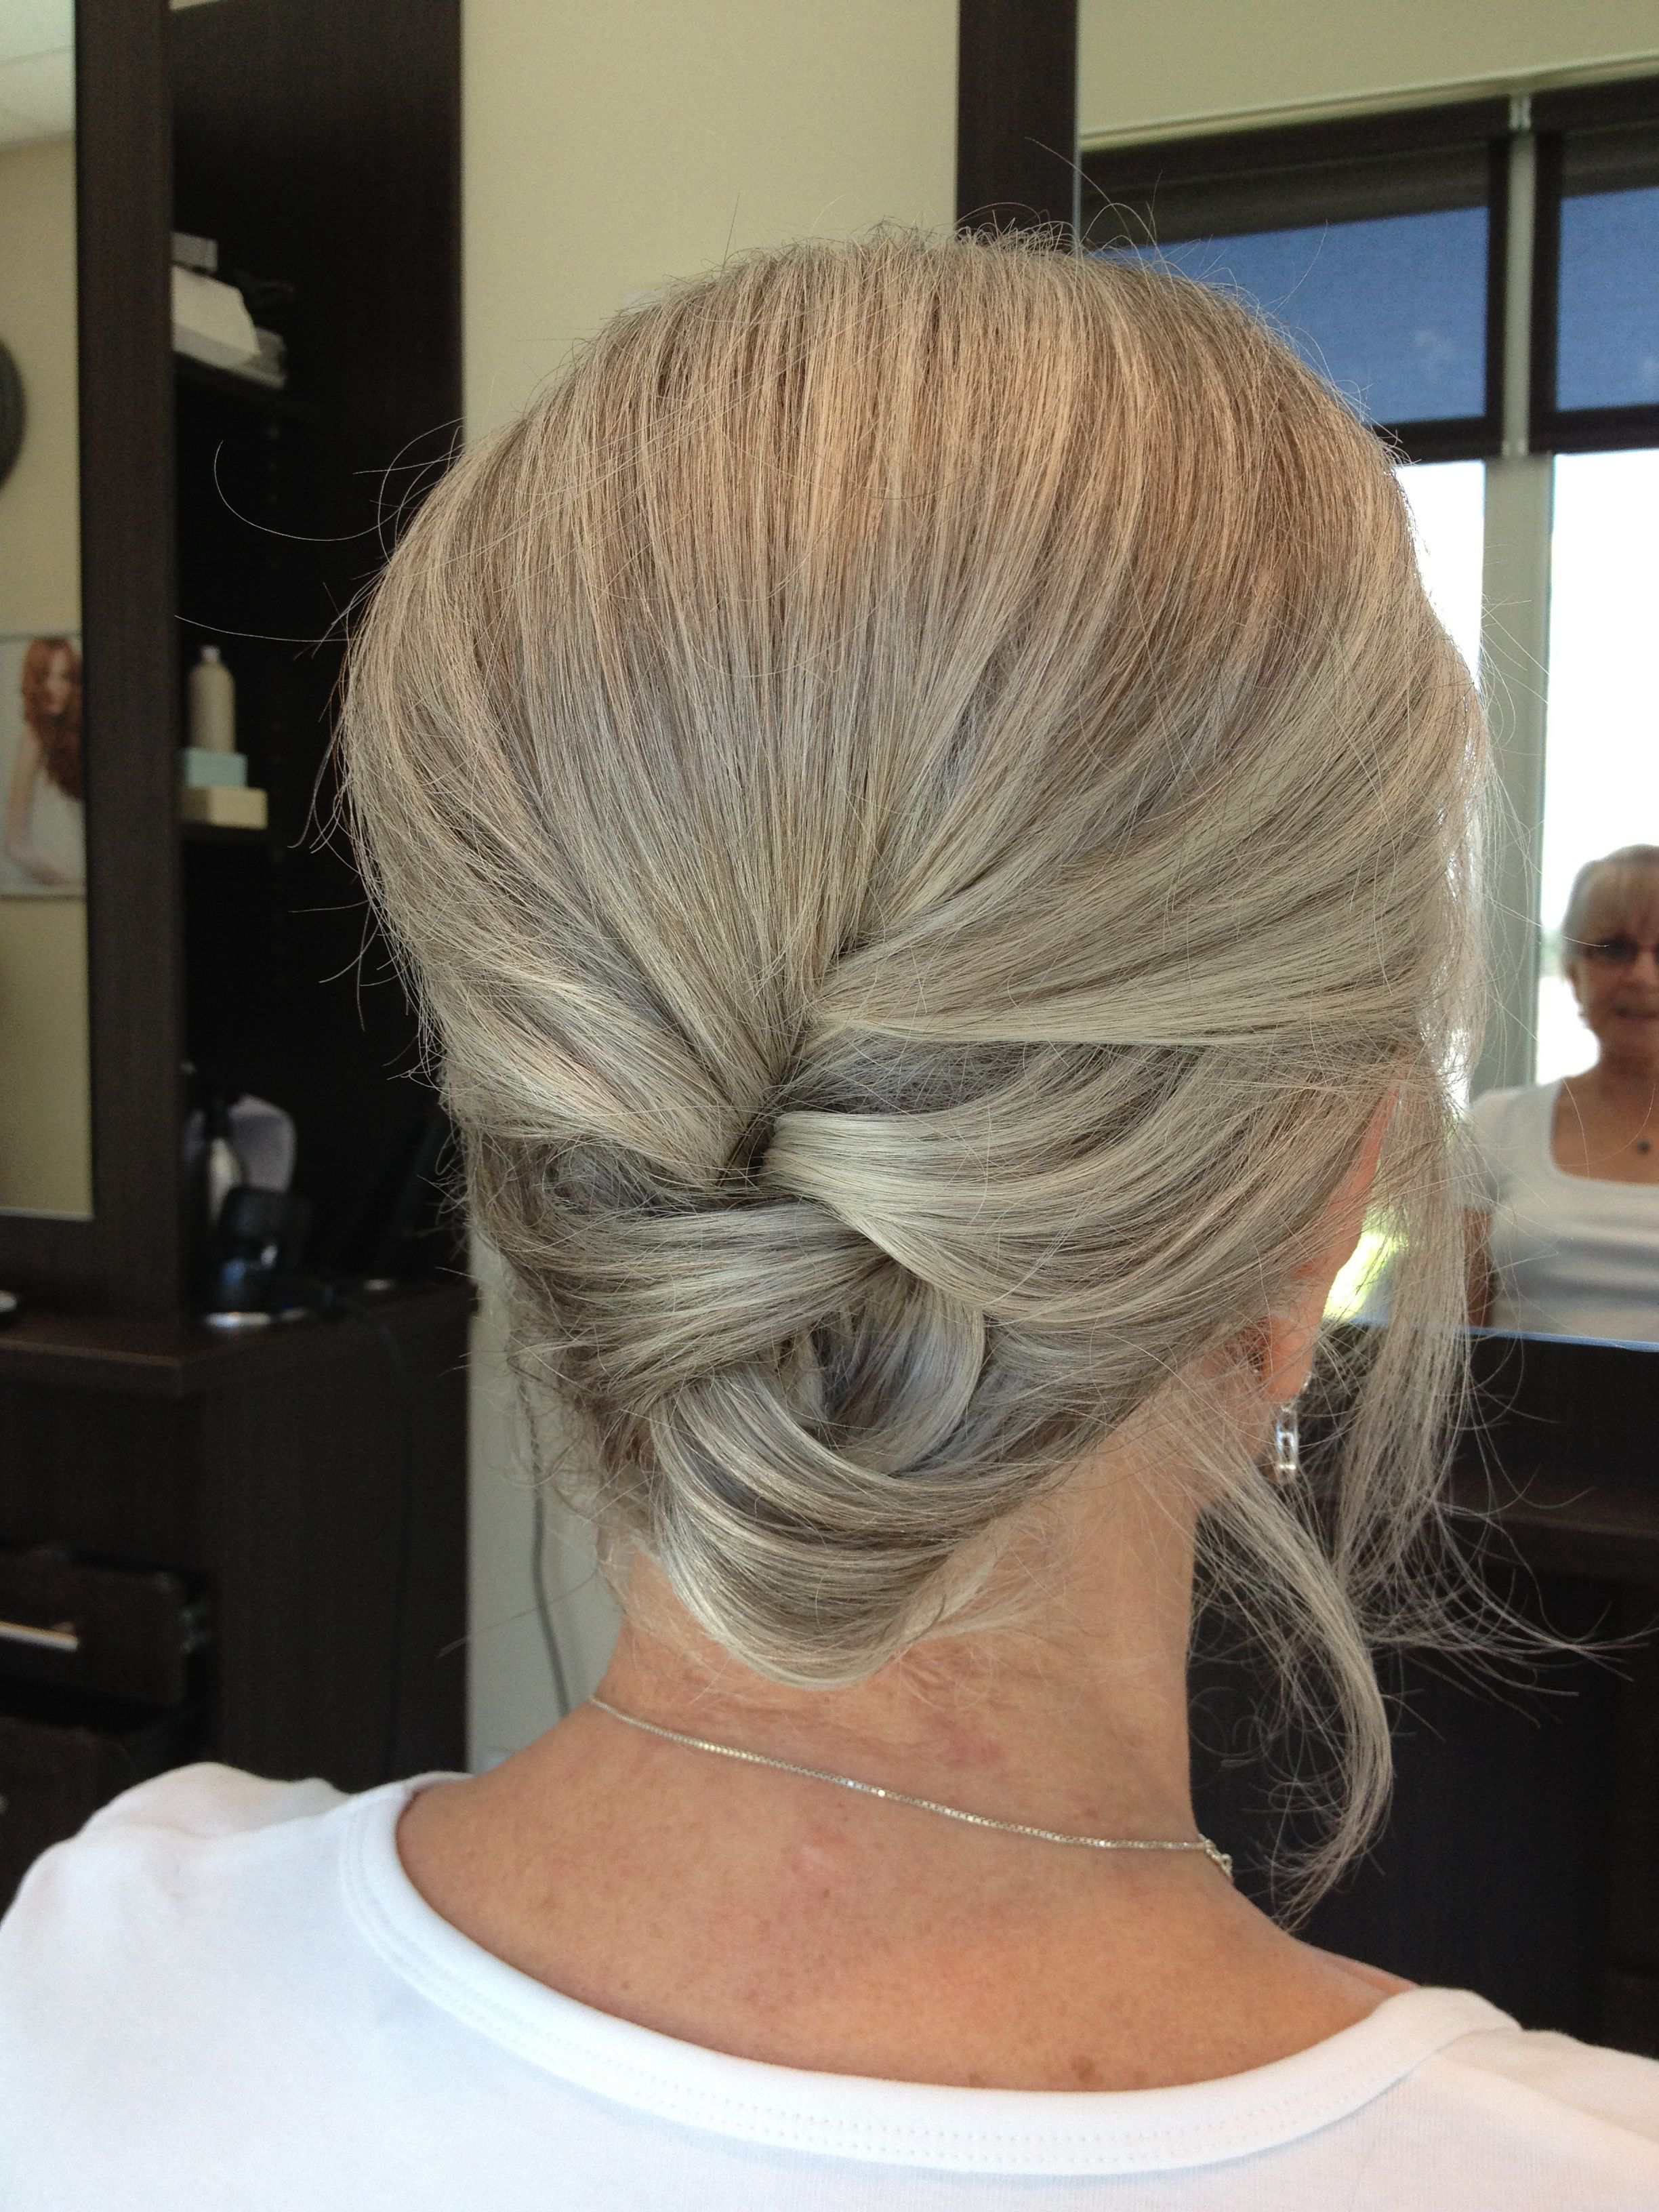 Updo for 50 and over women | Updo Hairstyles for Women ...